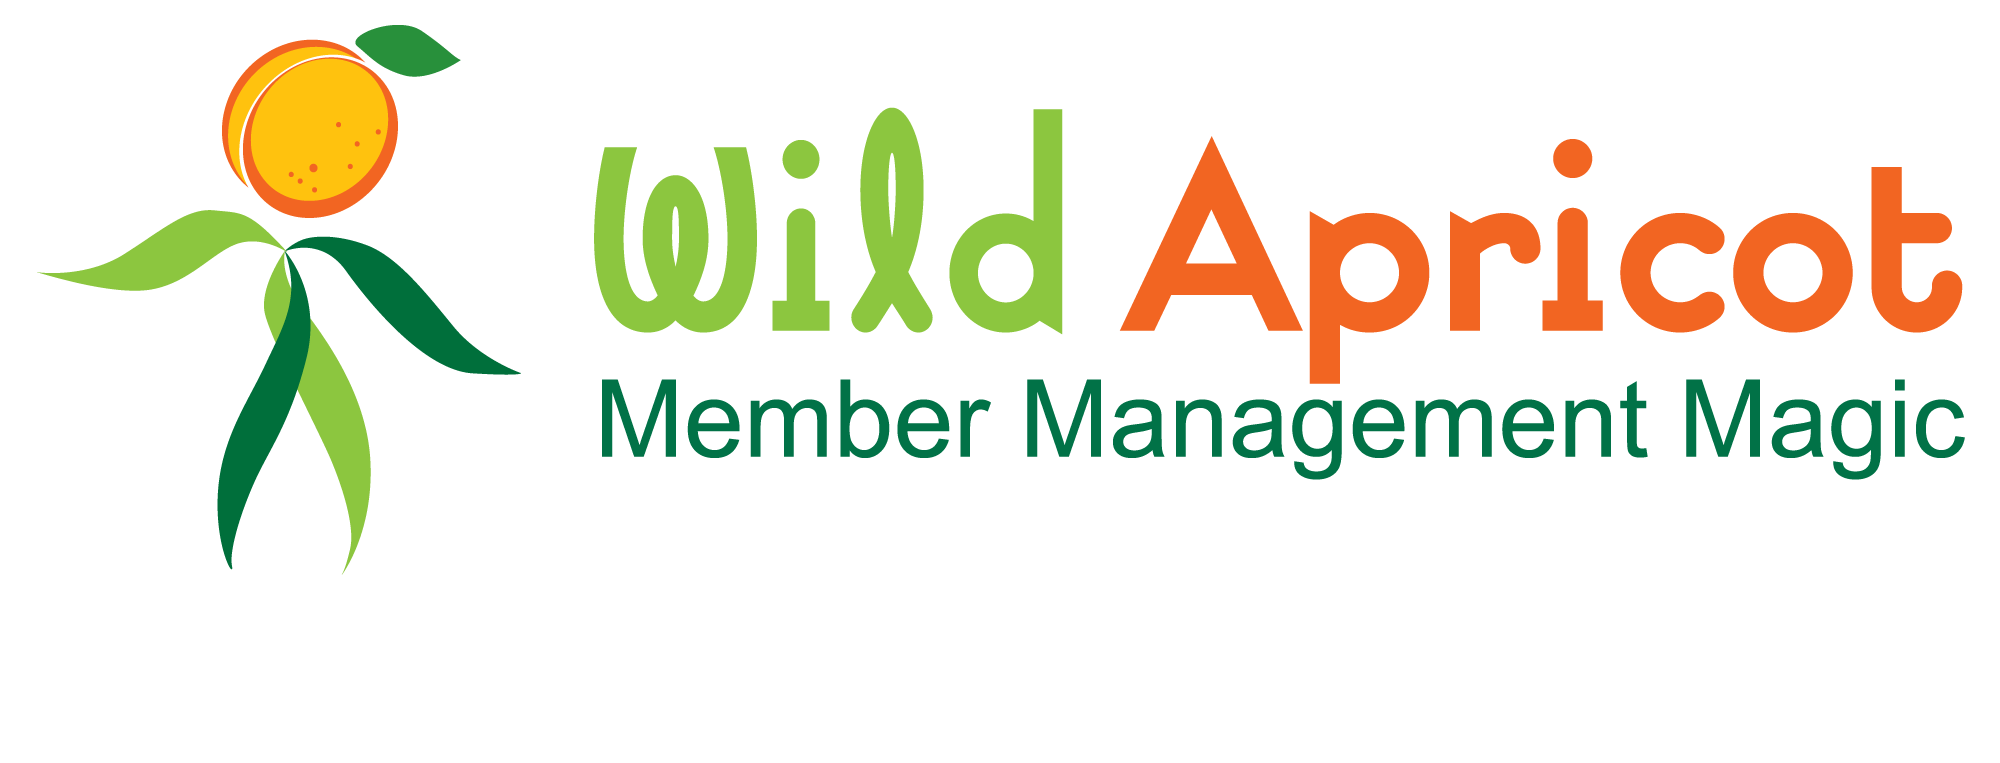 Membership-management-software